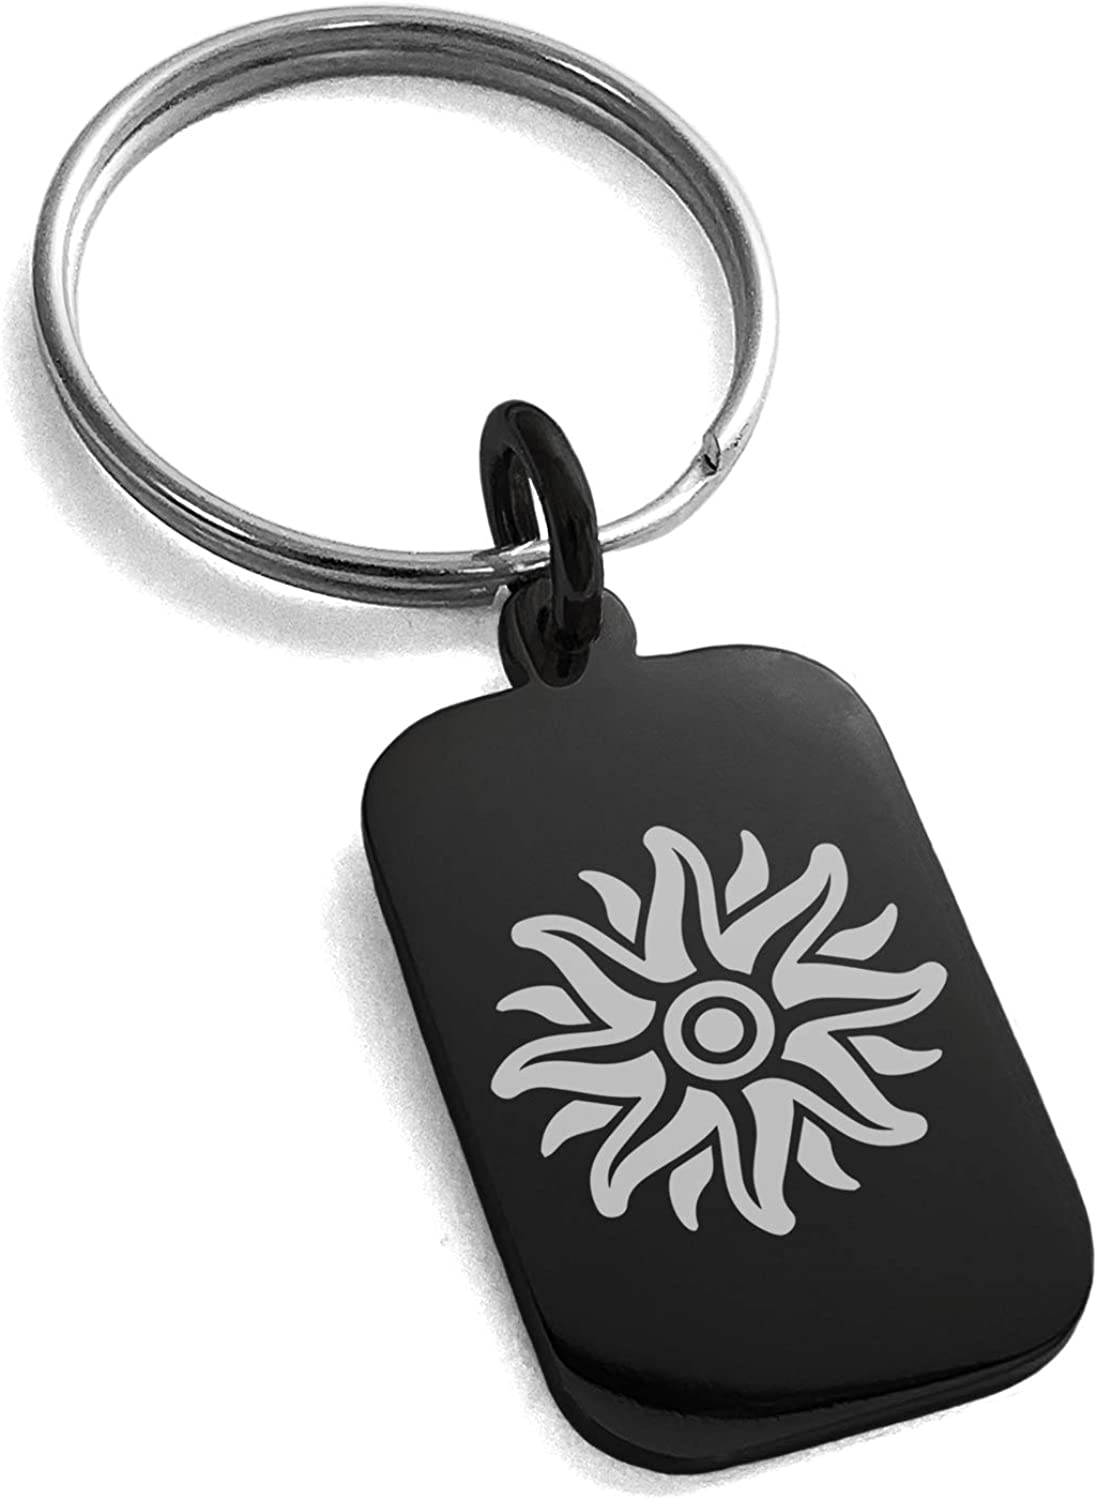 Tioneer Stainless Steel Apollo Greek God of Sun Symbol Small Rectangle Dog Tag Charm Keychain Keyring